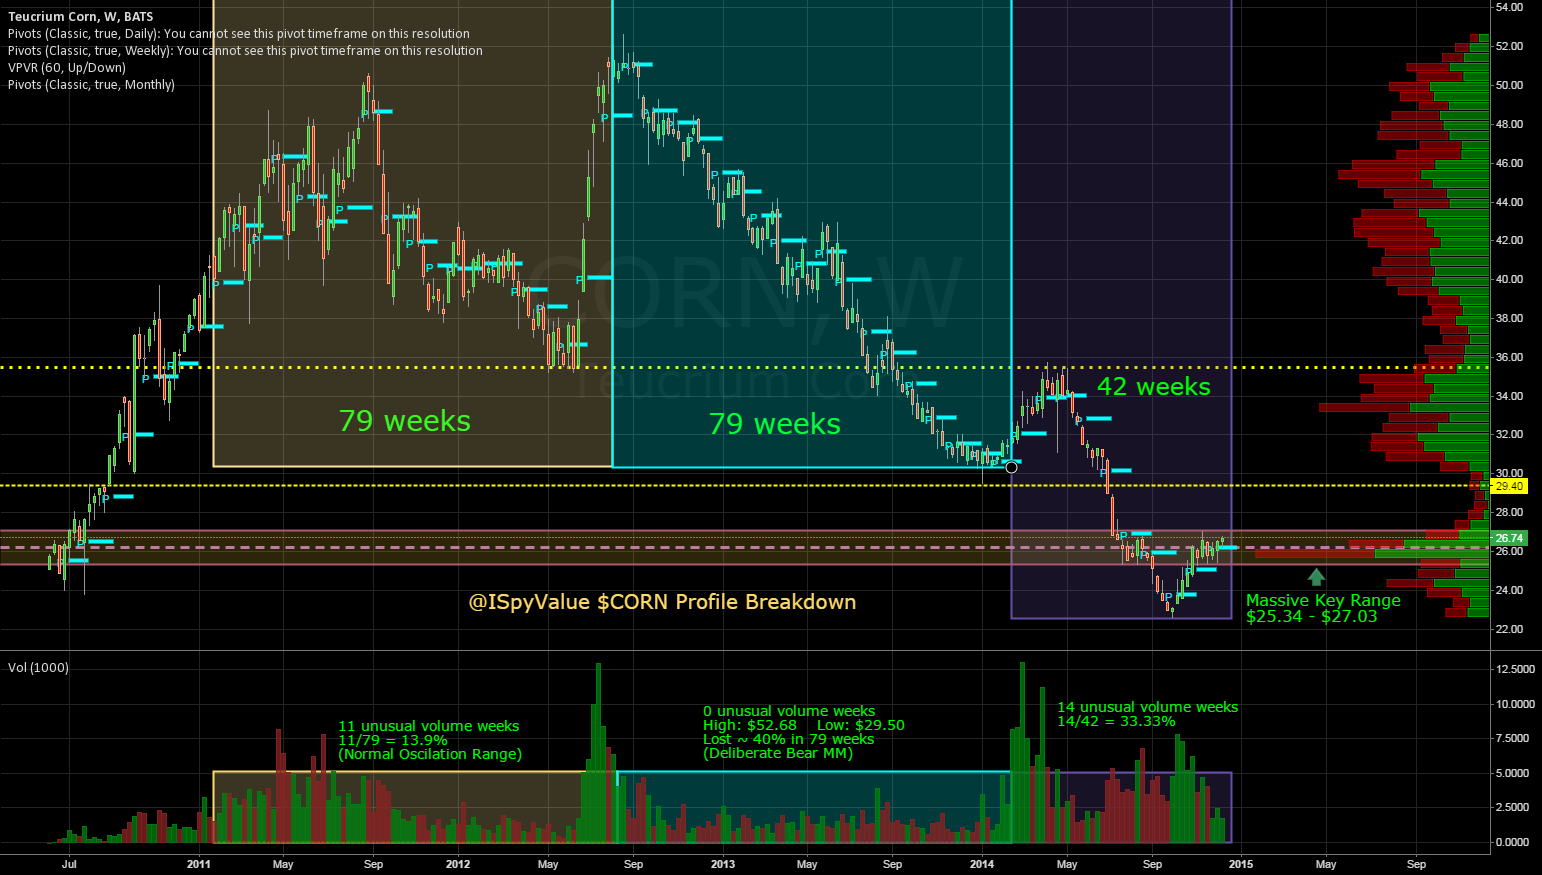 @ISpyValue $CORN Profile Breakdown